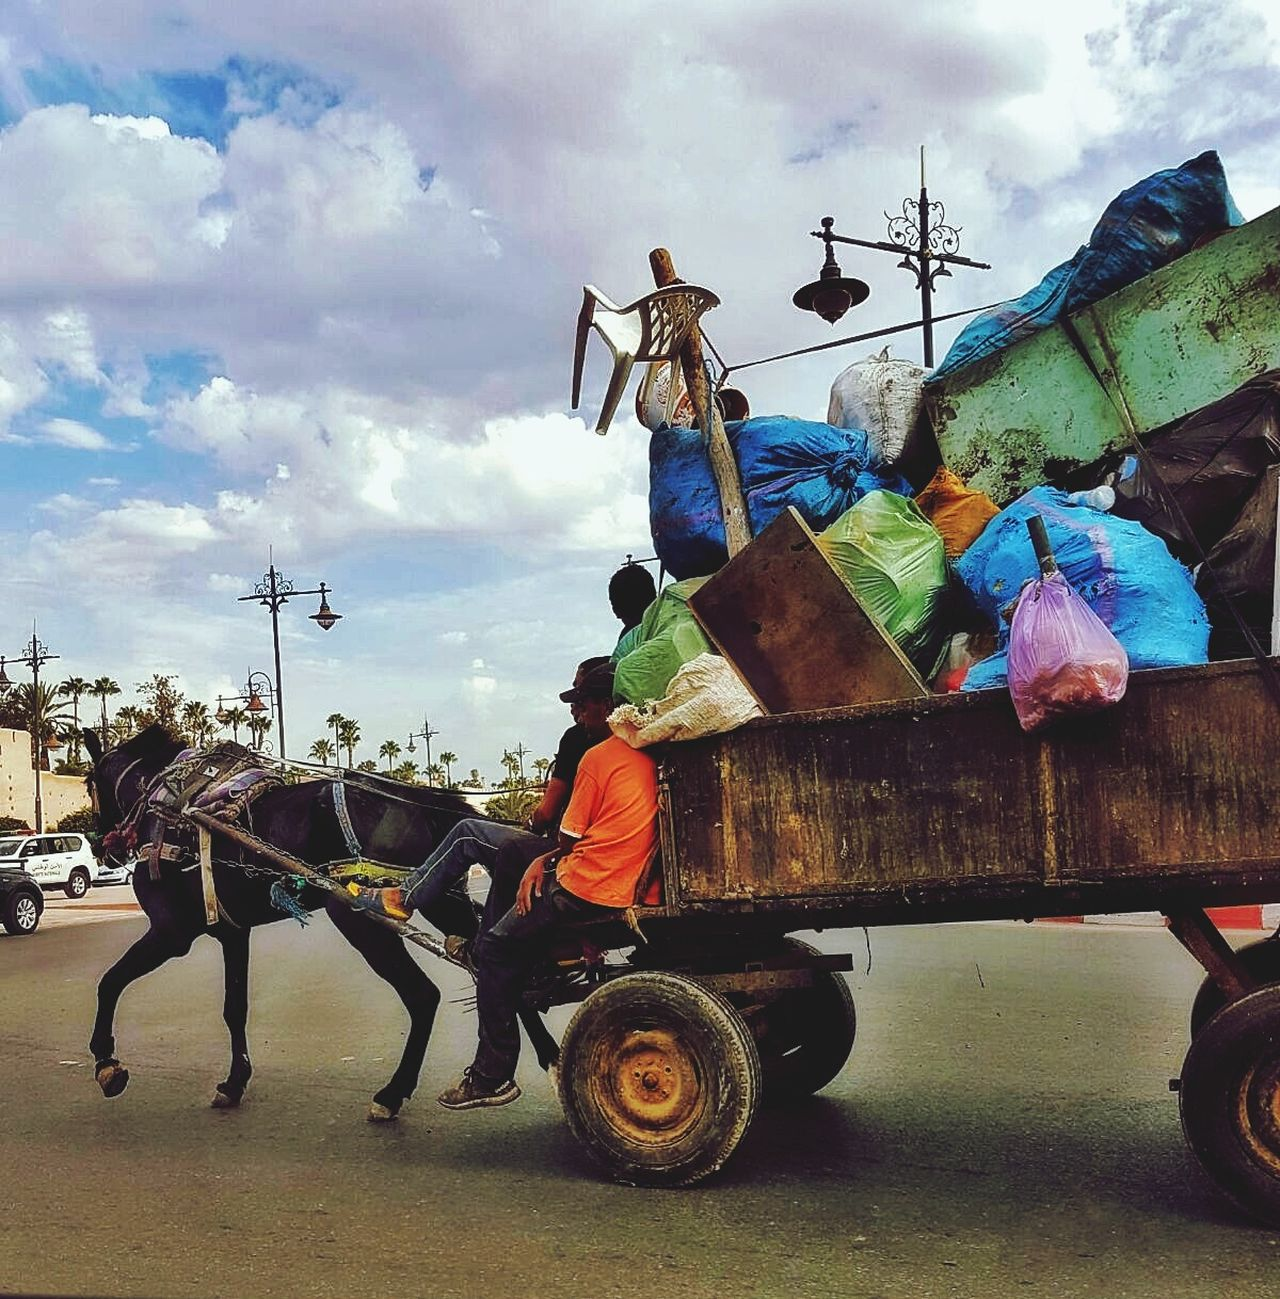 Transportation Horse Working Animal Mode Of Transport Side View Horsedrawn Horse Cart Sky Cloud Full Length Riding Land Vehicle Cloud - Sky Cart Carriage Domestic Animals Working Animals Livestock Bridle Day Marakesh Morocco Horsepower Travel Bestoftheday